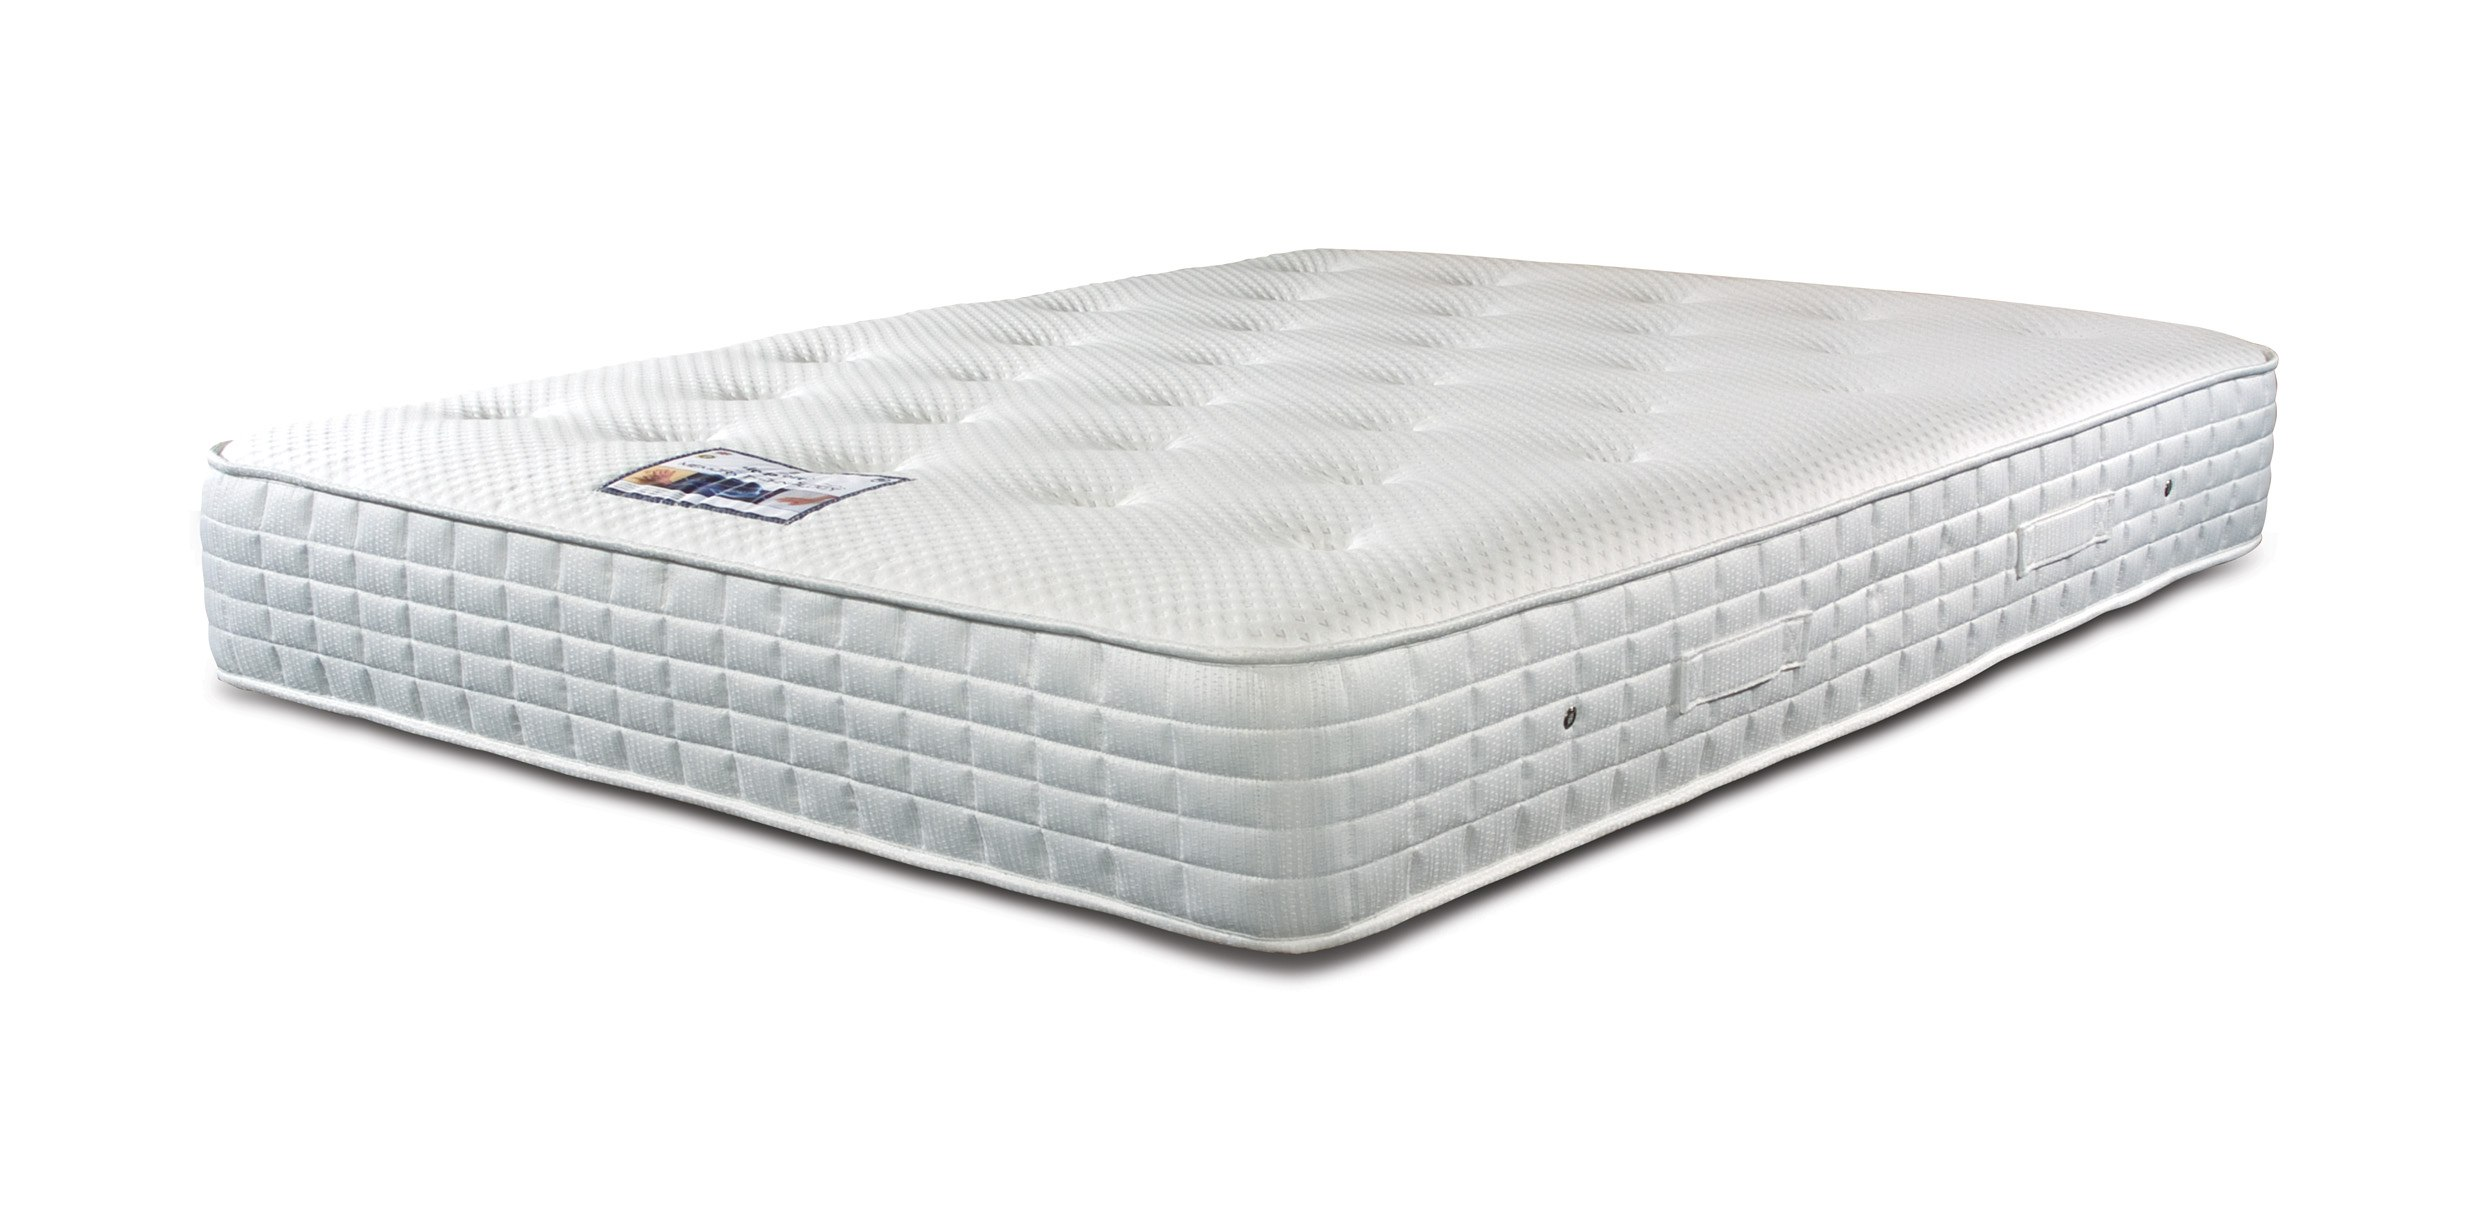 Cool Sensations 1400 mattress available from the world of beds, doncaster, south yorkshire